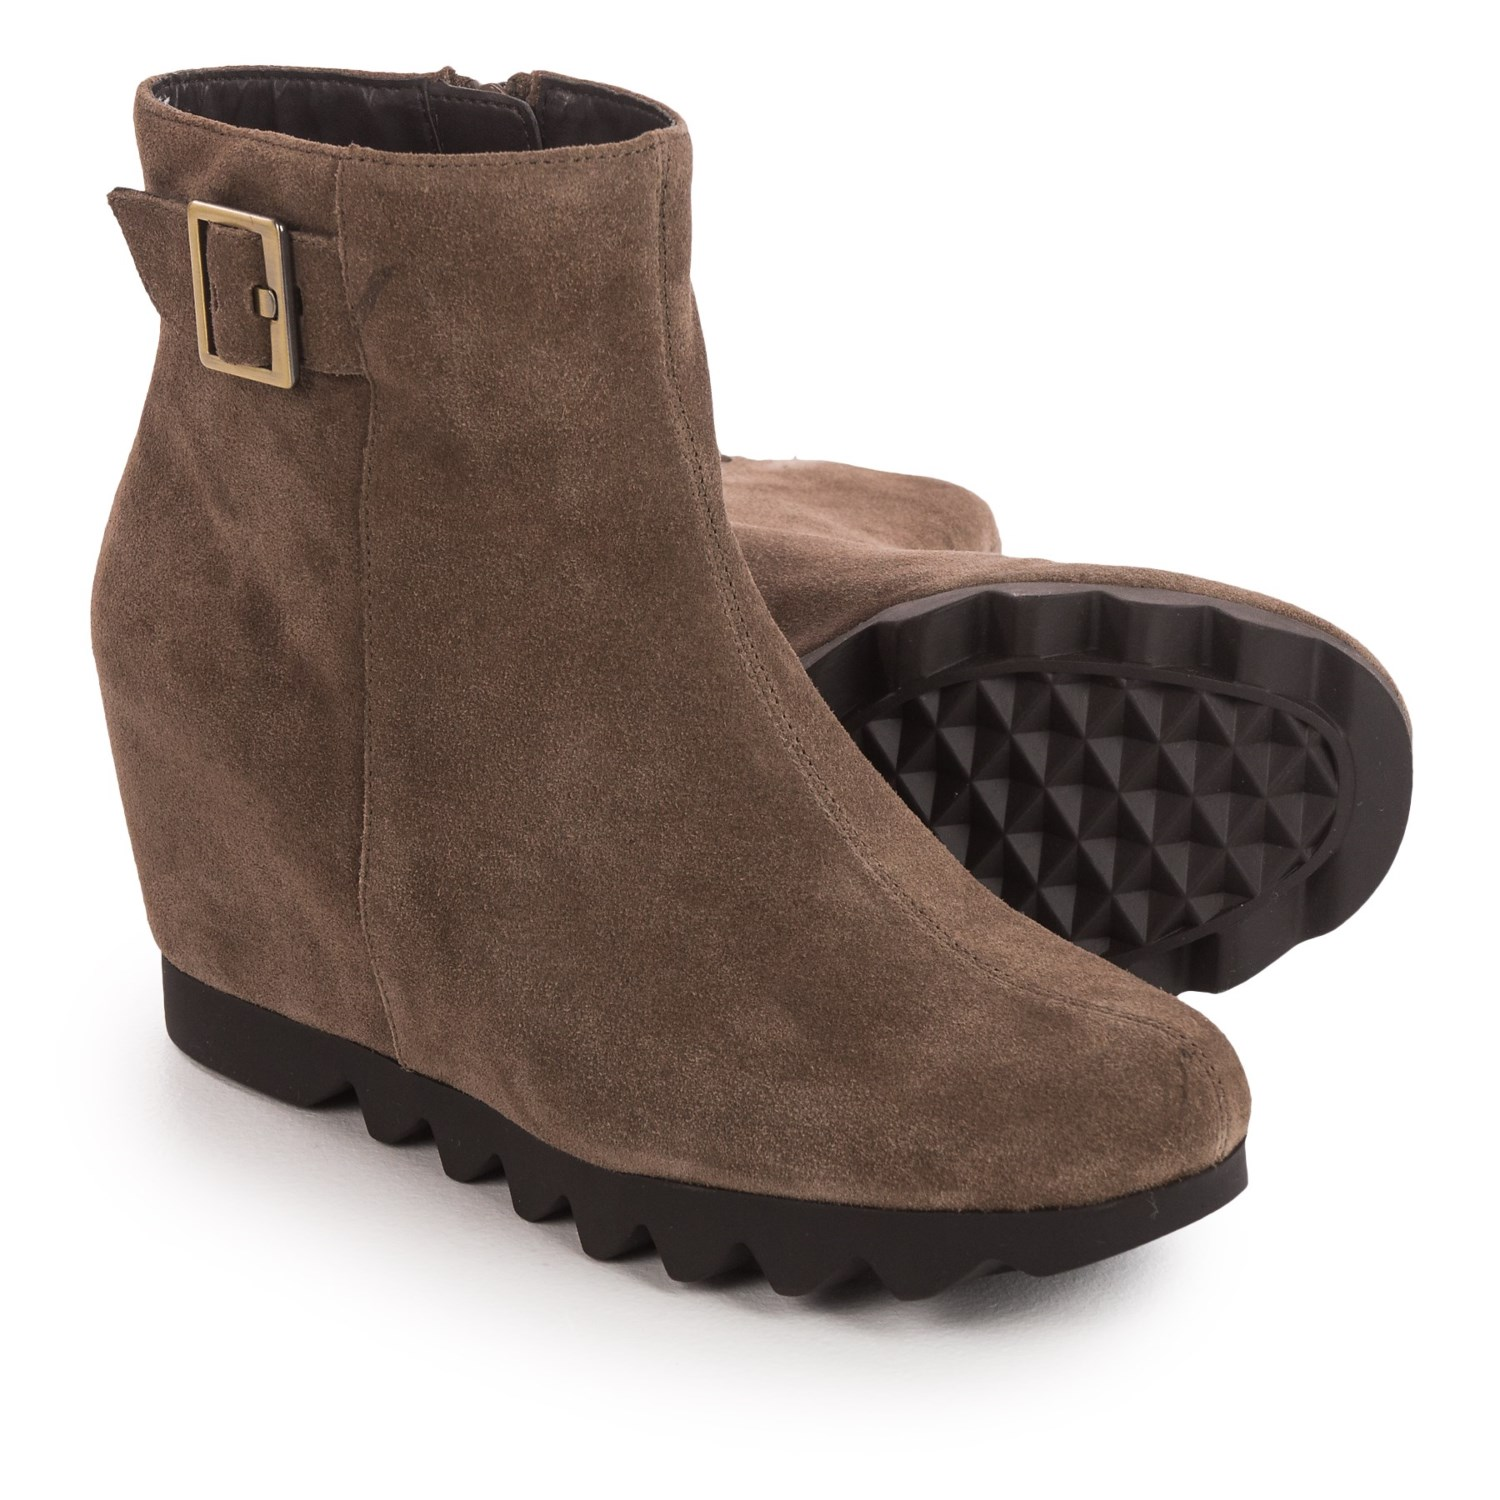 aerosoles confidential wedge ankle boots for